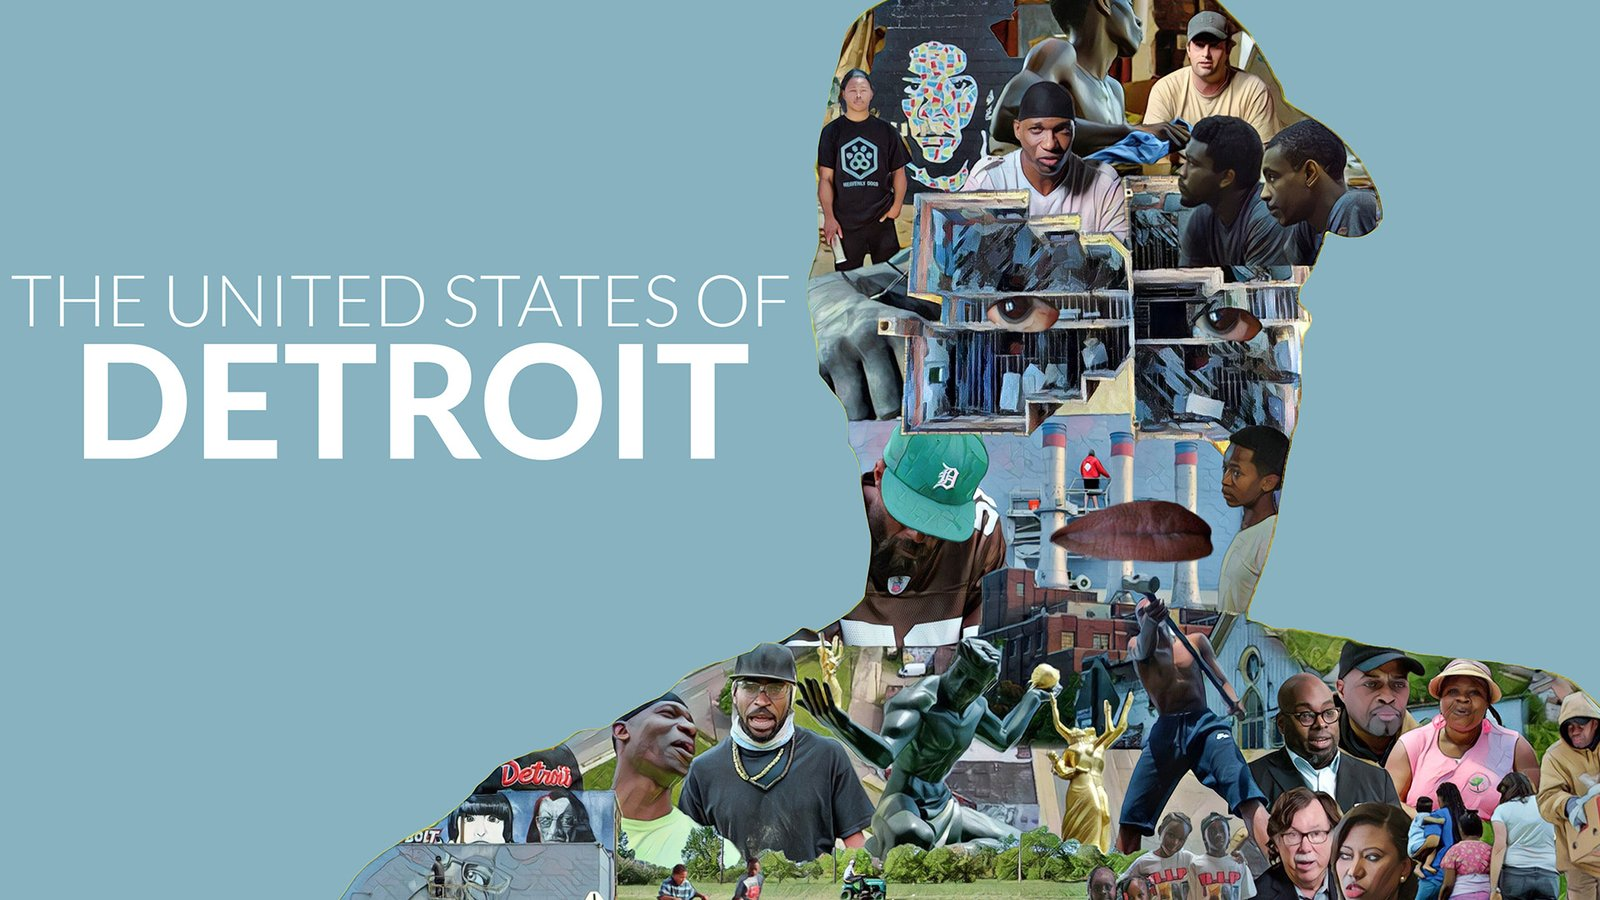 United States of Detroit - The Power of Community Action in Detroit